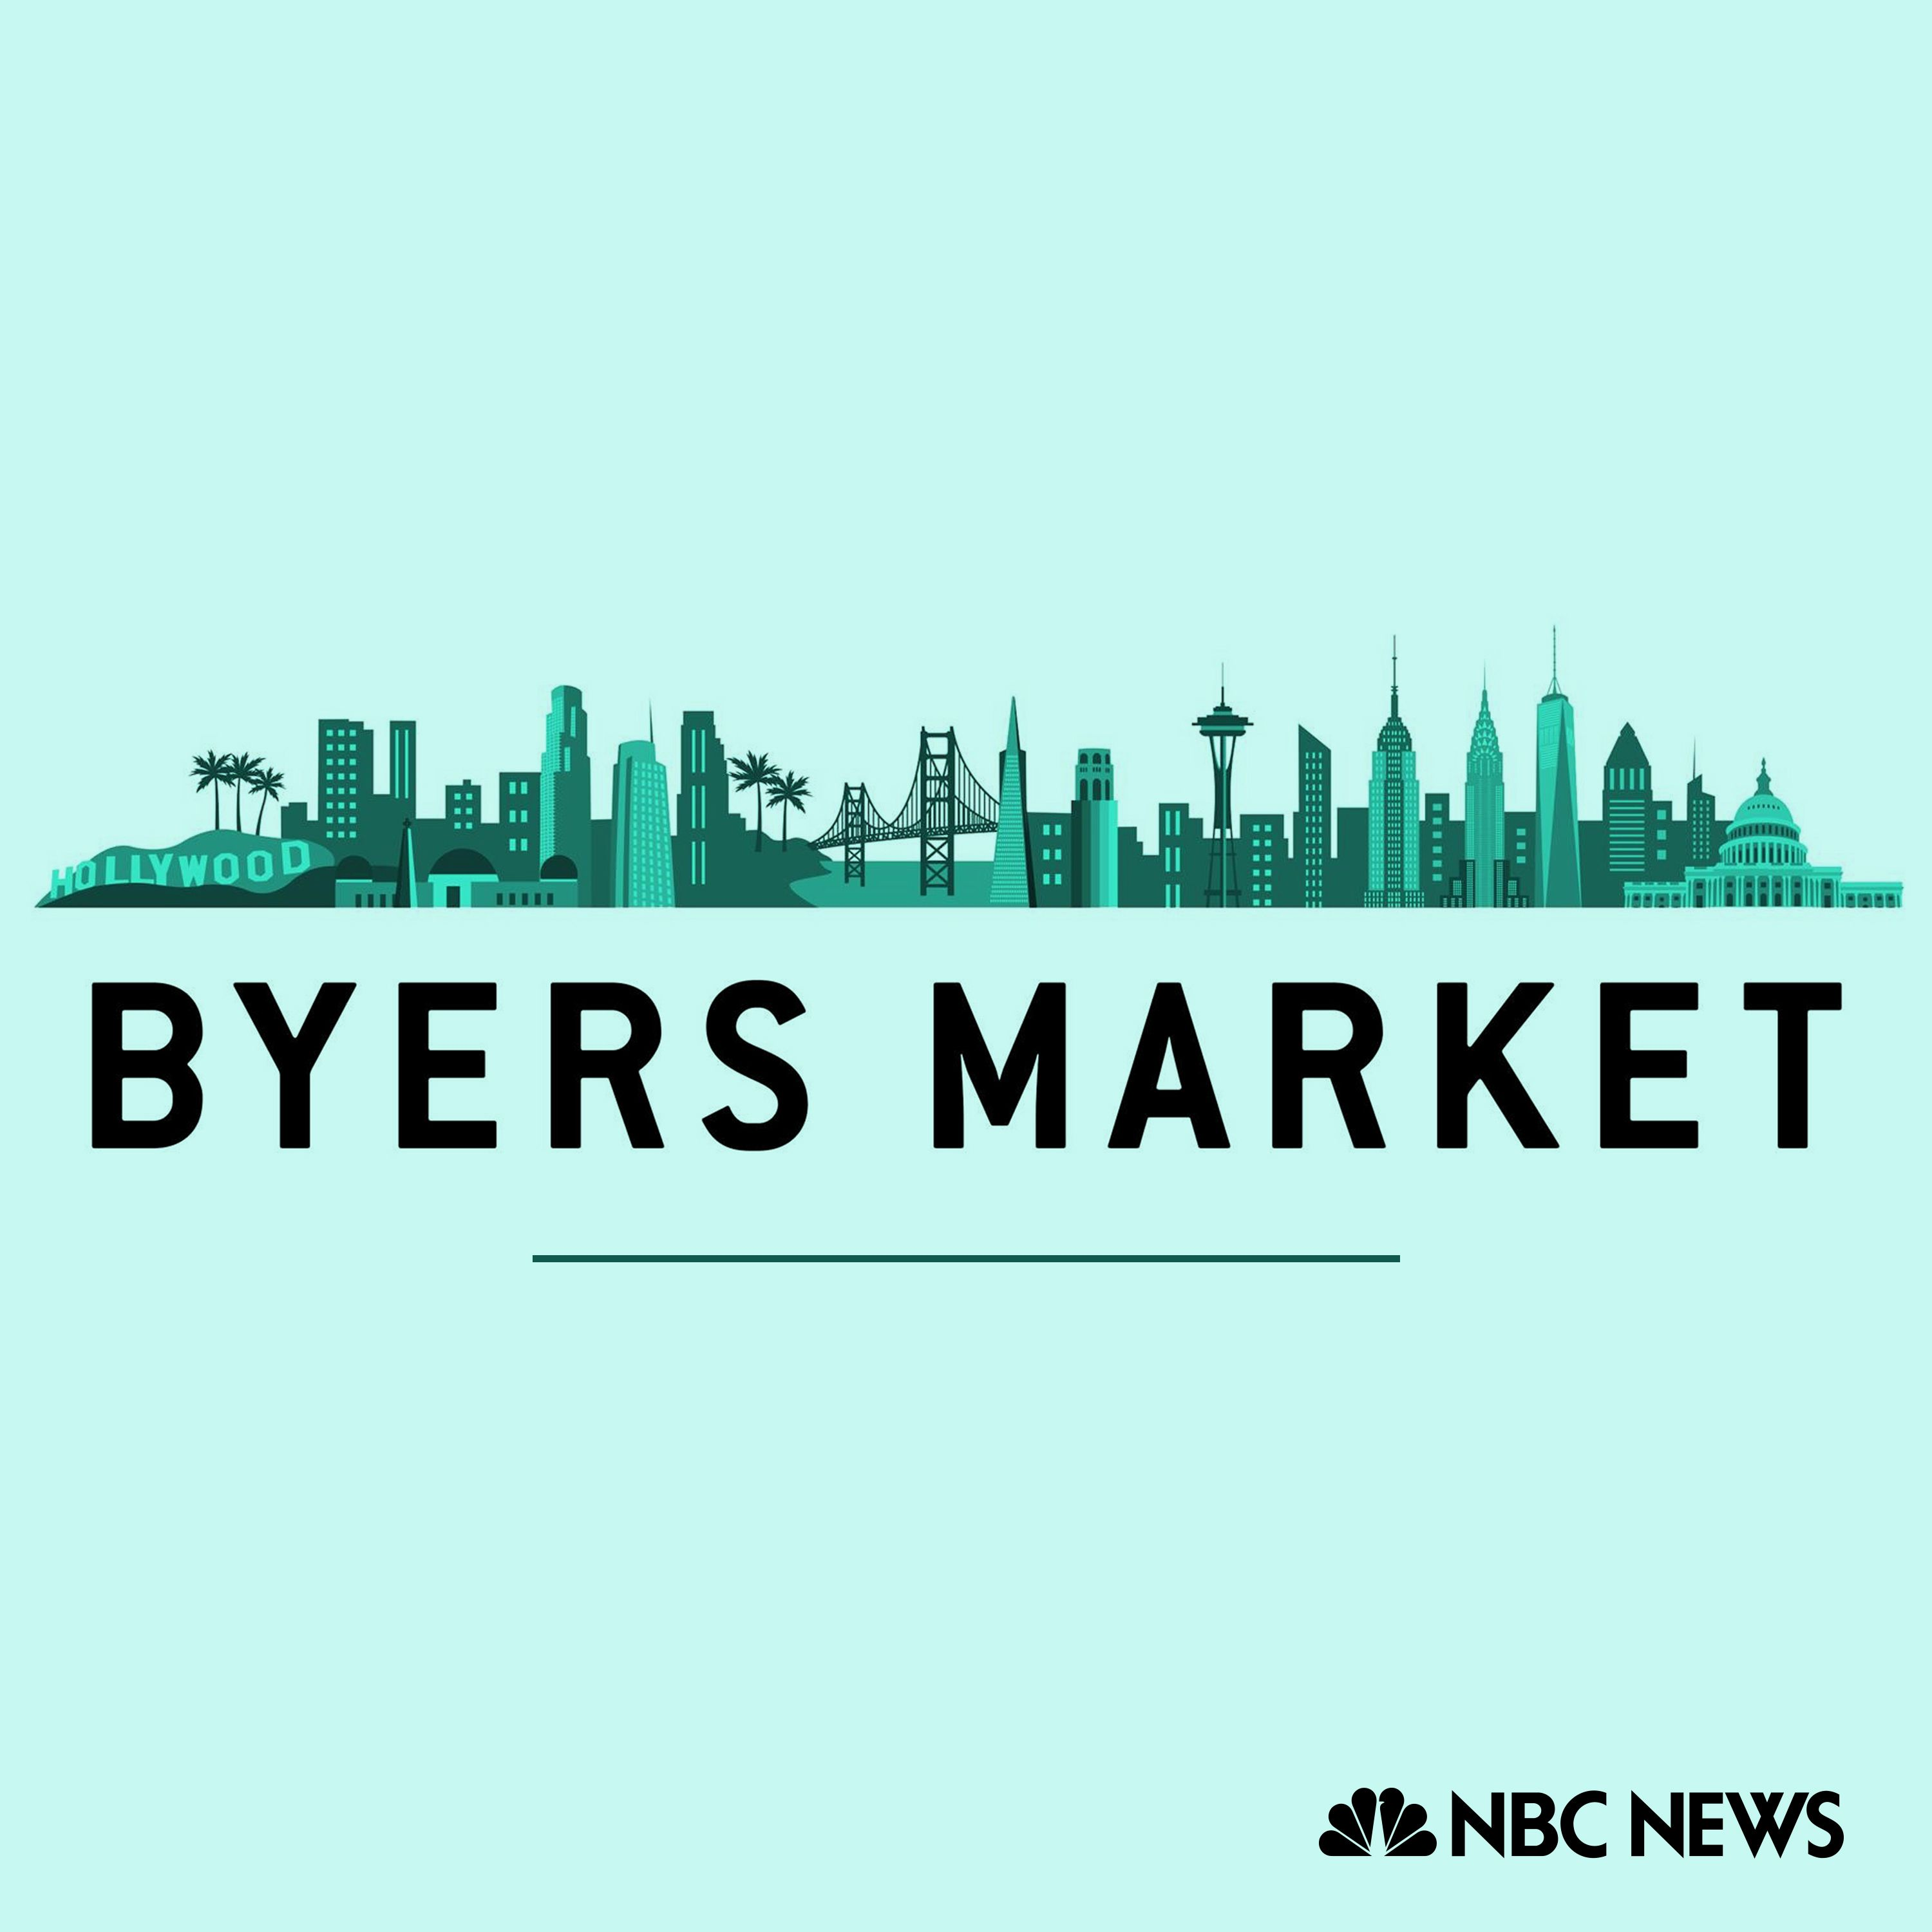 Introducing Byers Market